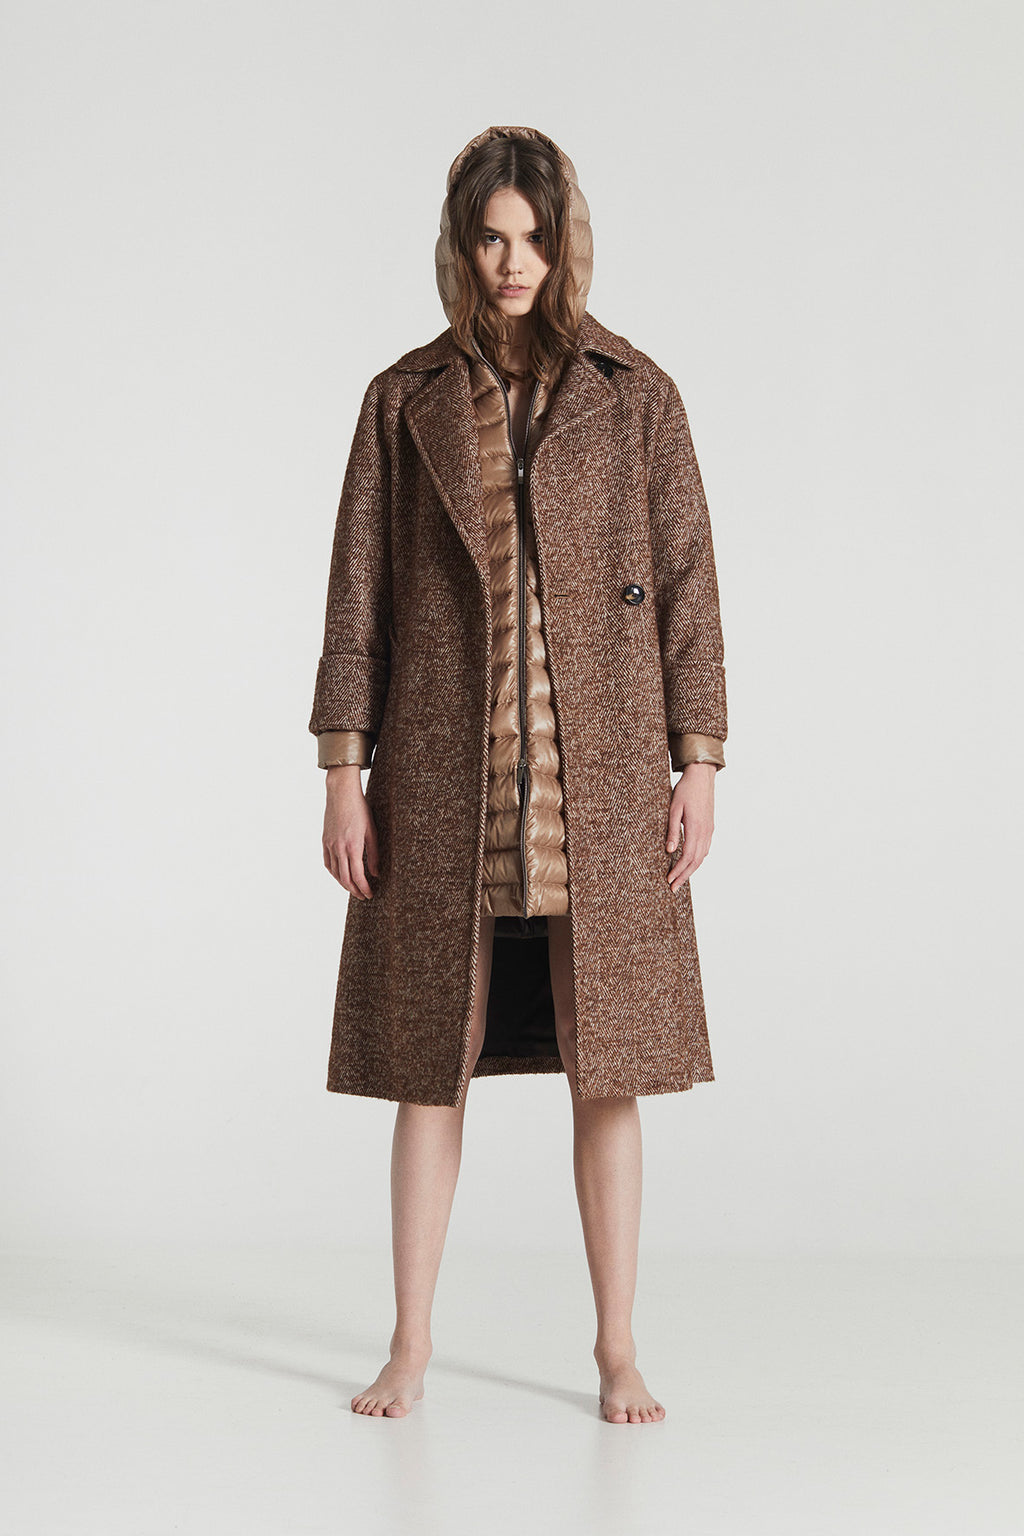 LUNA / Herringbone Tweed Wool Coat